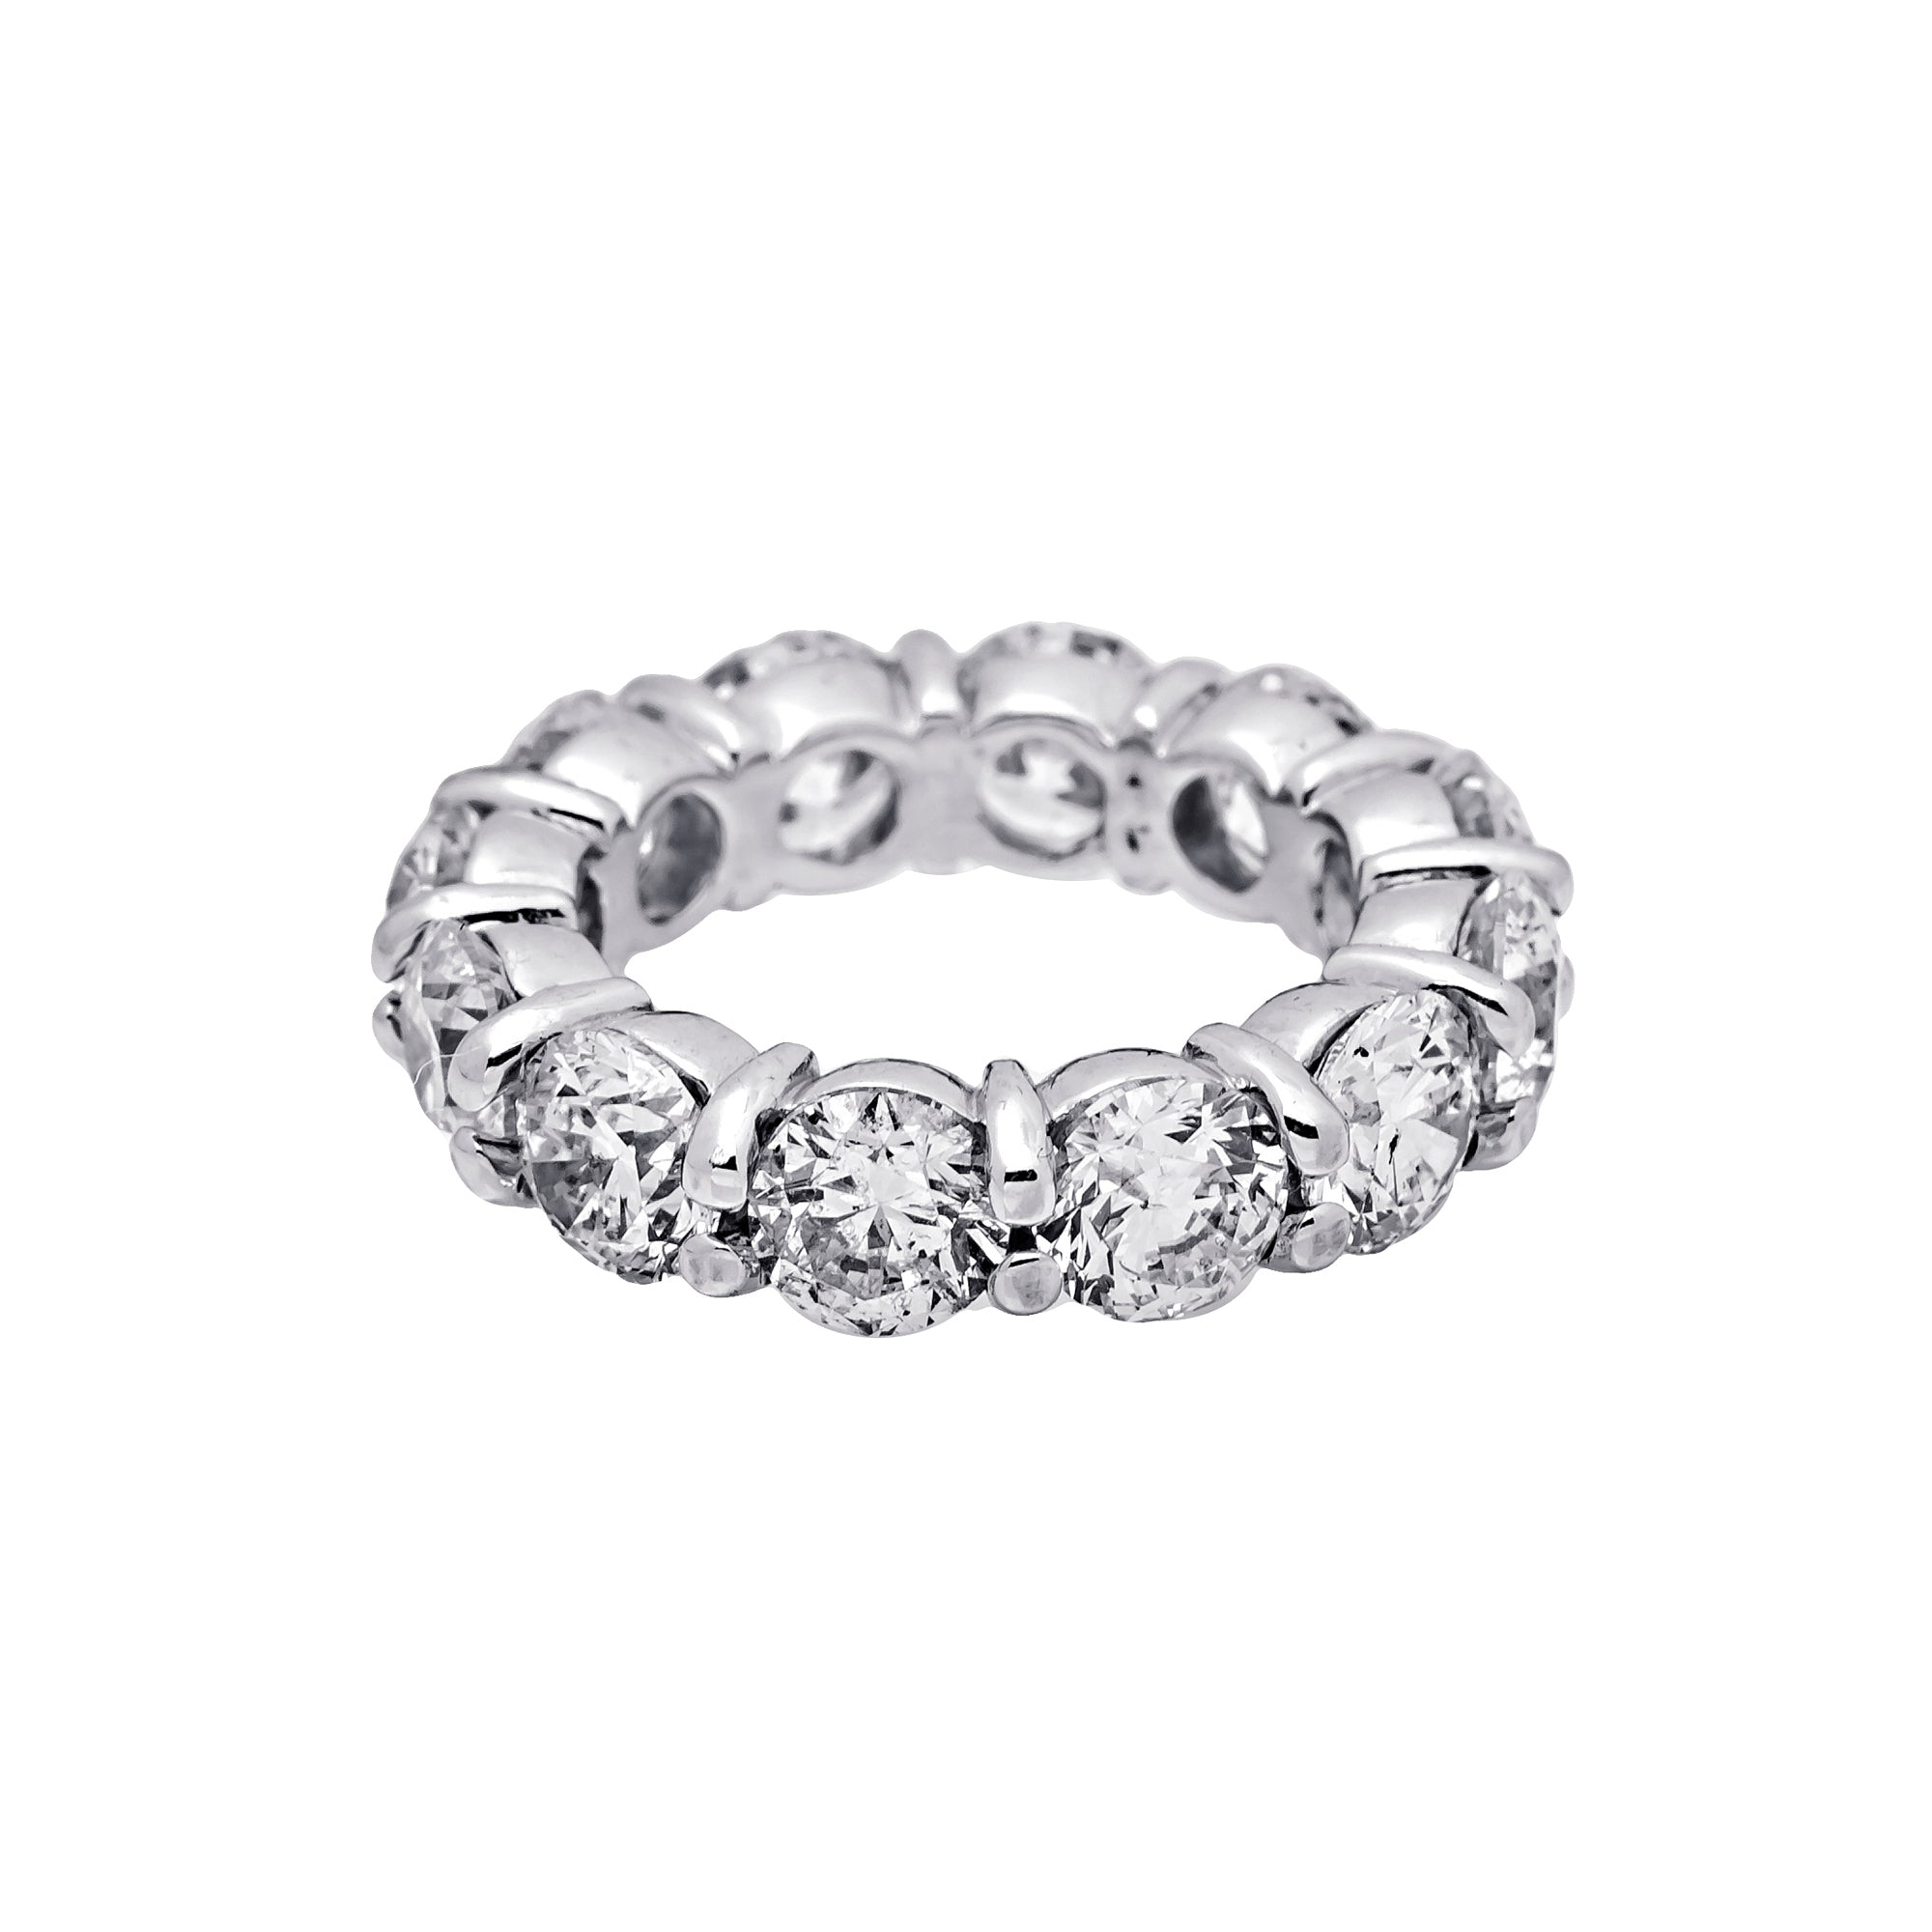 14K WHITE GOLD LADIES RING WITH 8.71 CT  DIAMONDS